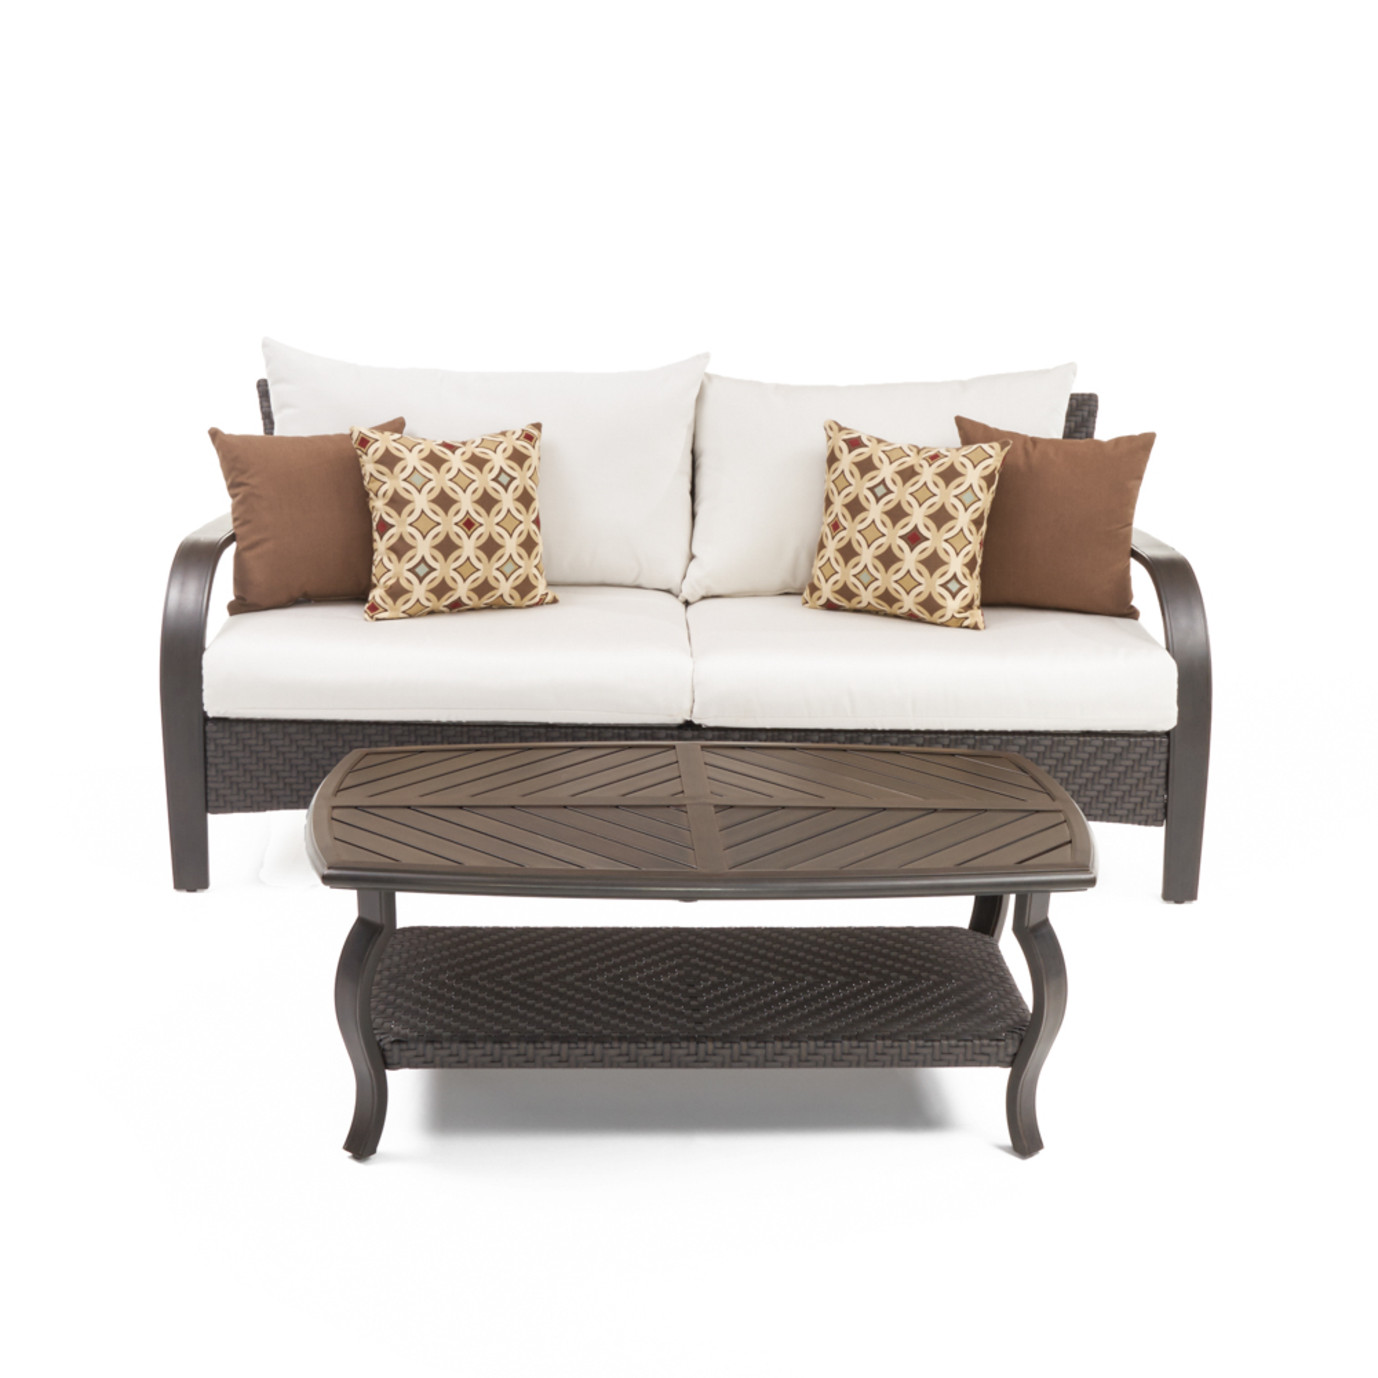 Barcelo™ Sofa & Coffee Table - Moroccan Cream